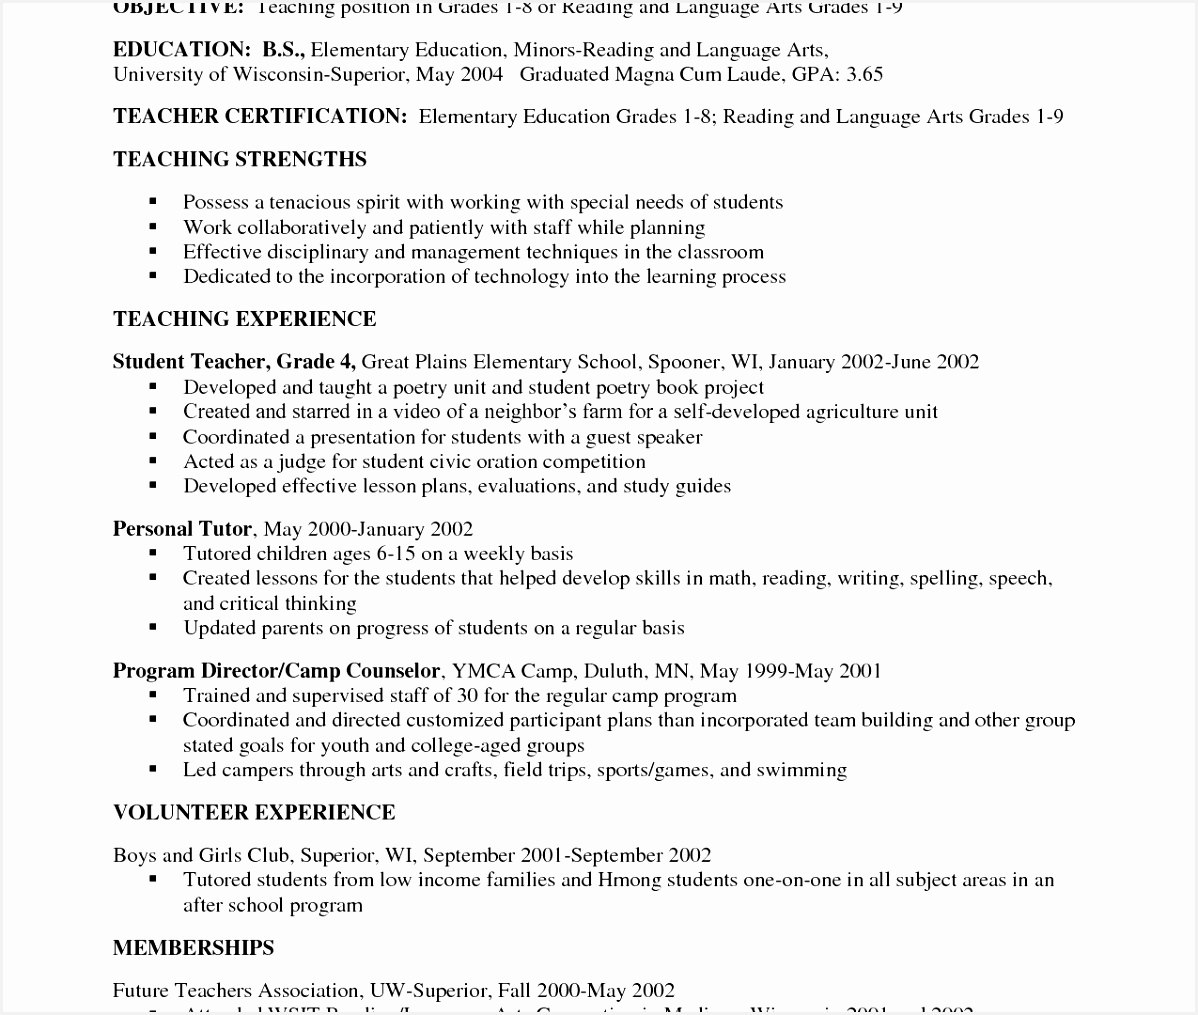 Personal Tutor Sample Resume 3fsux Best Of Resume Samples for Mathematics Teacher Beautiful Stock Math Tutor10151198